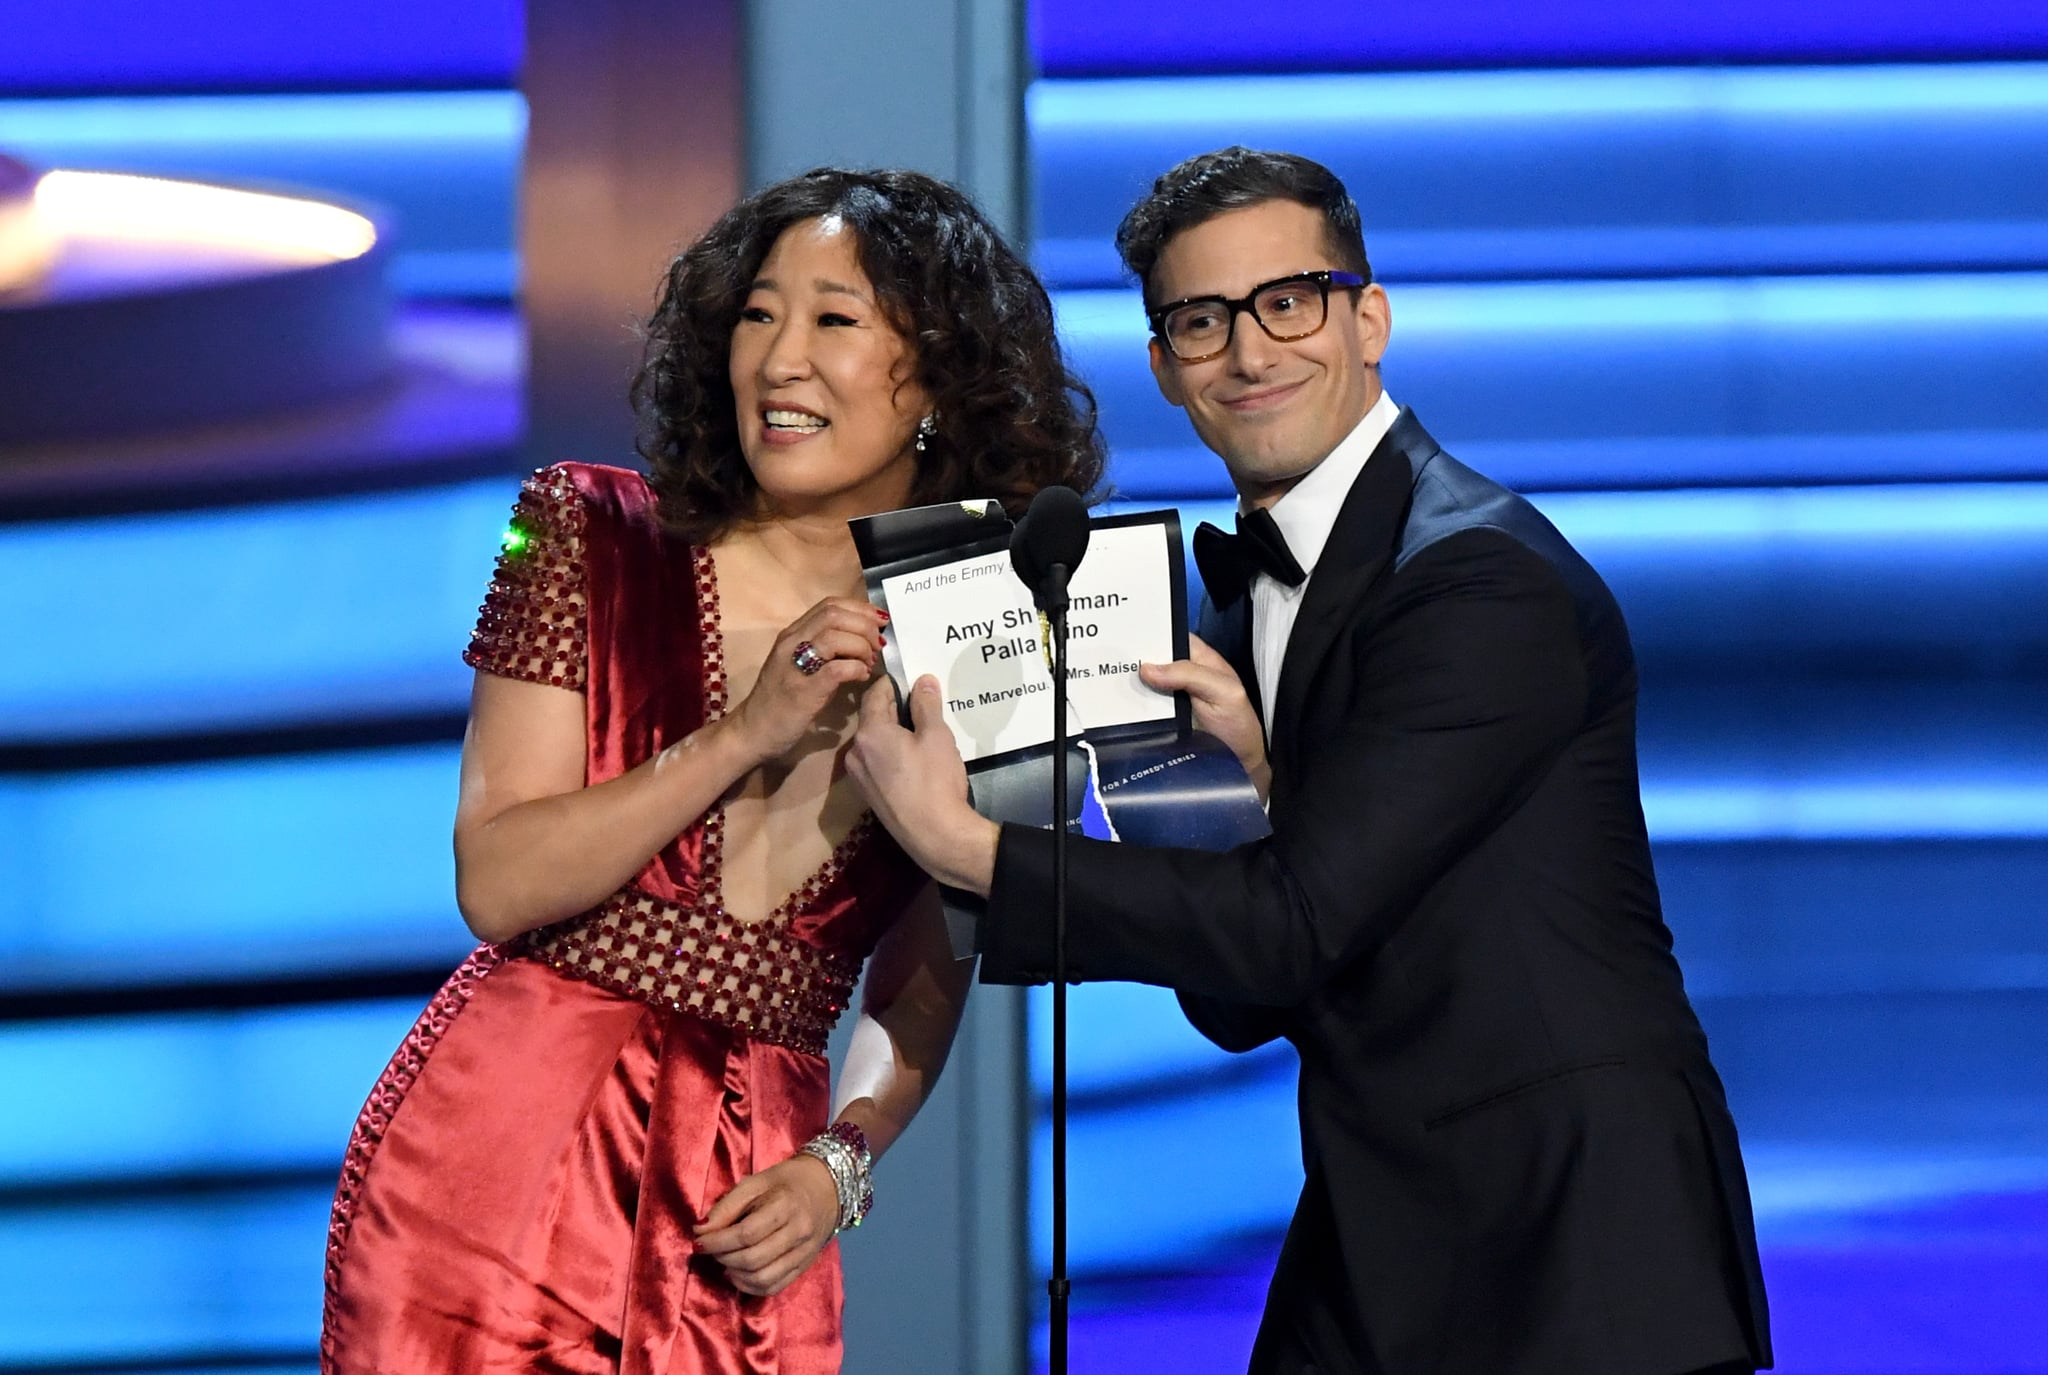 LOS ANGELES, CA - SEPTEMBER 17:  Sandra Oh (L) and Andy Samberg present the Outstanding Directing for a Comedy Series award onstage during the 70th Emmy Awards at Microsoft Theater on September 17, 2018 in Los Angeles, California.  (Photo by Kevin Winter/Getty Images)